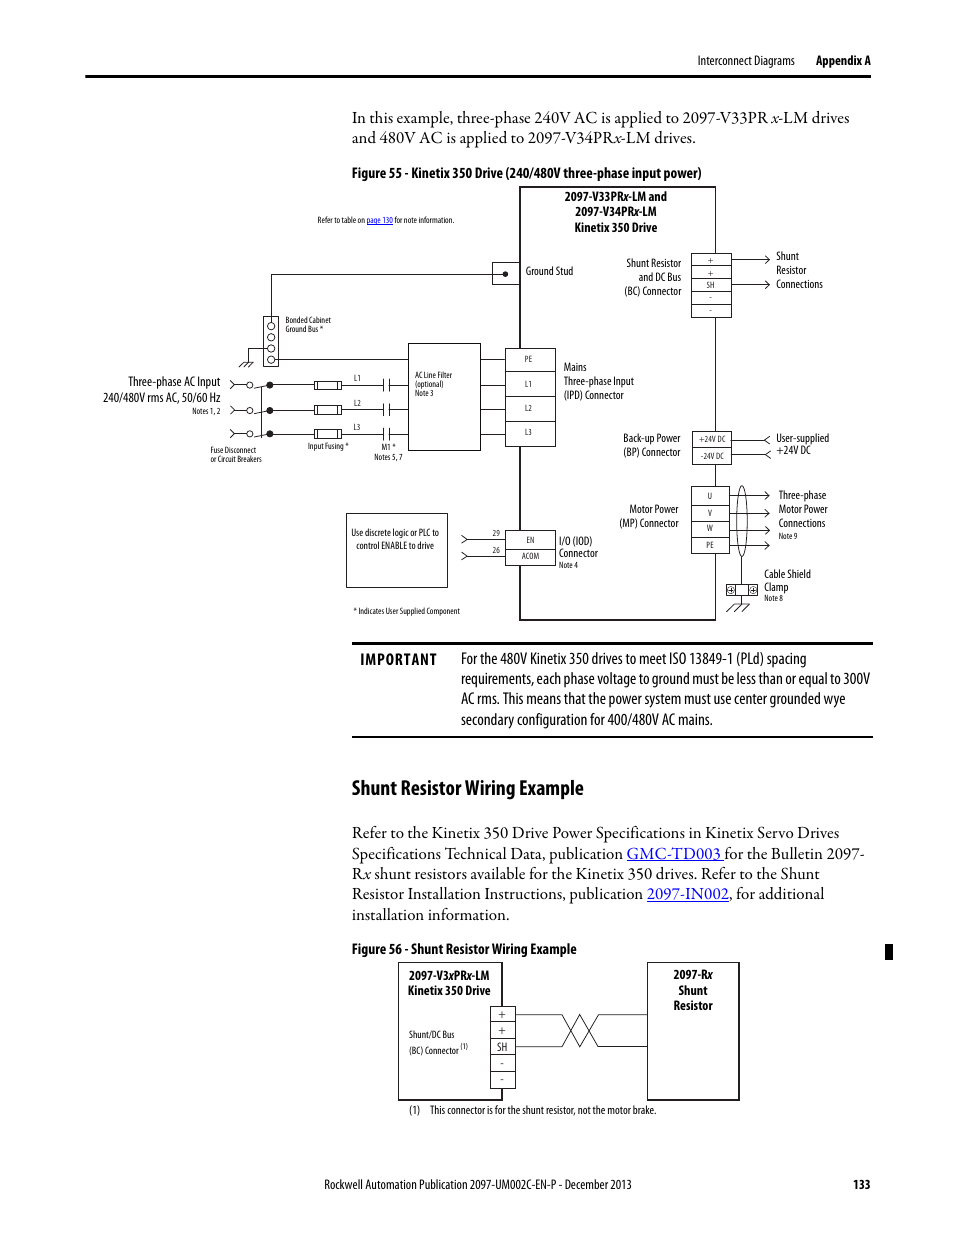 Shunt resistor wiring example | Rockwell Automation 2097-Vxxx ...